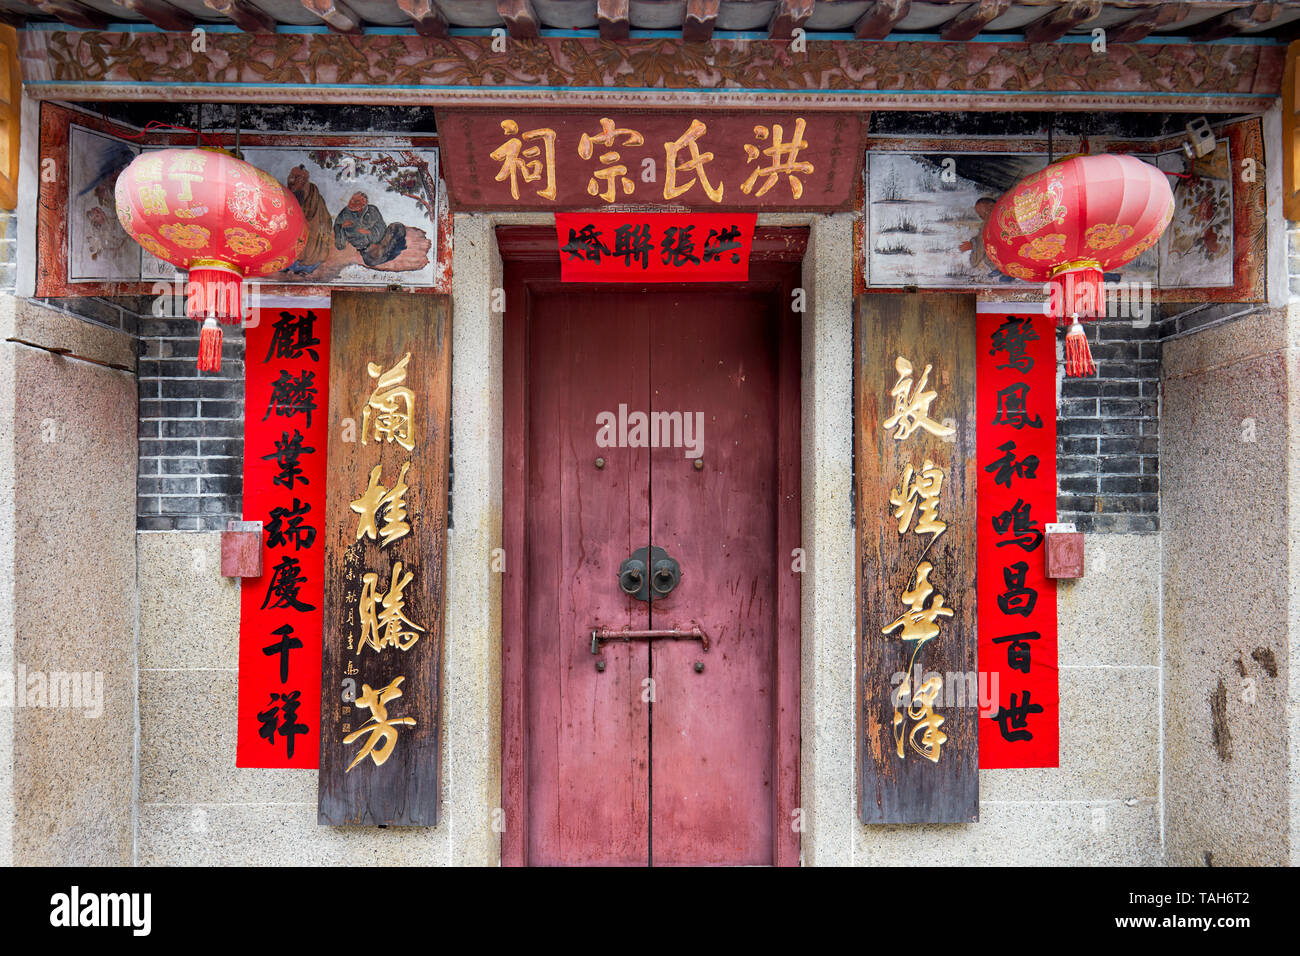 Old entrance door with red lanterns in Dafen Oil Painting Village. Shenzhen, Guangdong Province, China. - Stock Image